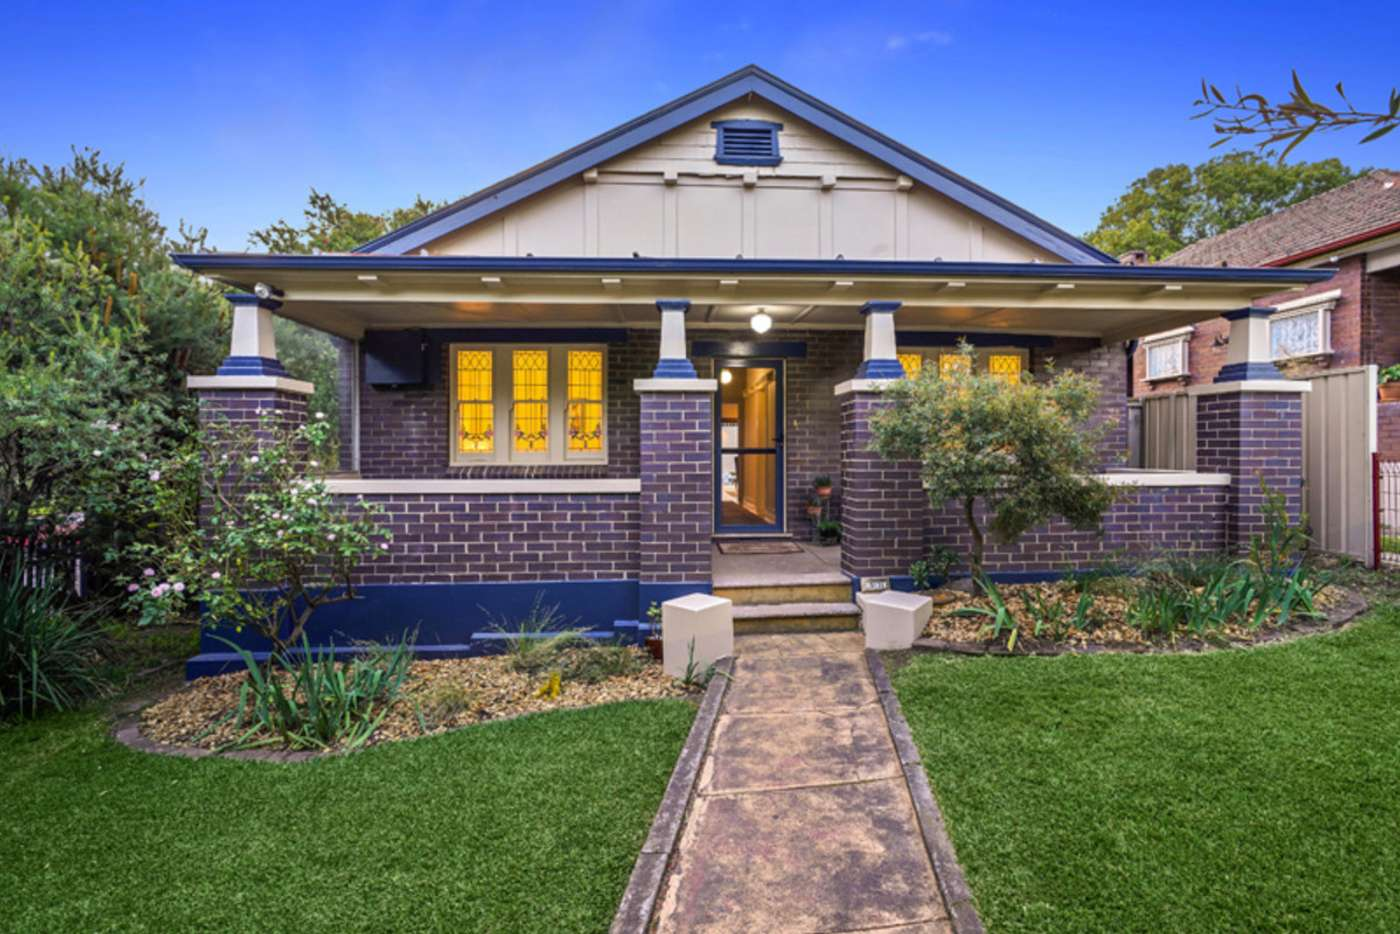 Main view of Homely house listing, 53 Goodlet Street, Ashbury NSW 2193